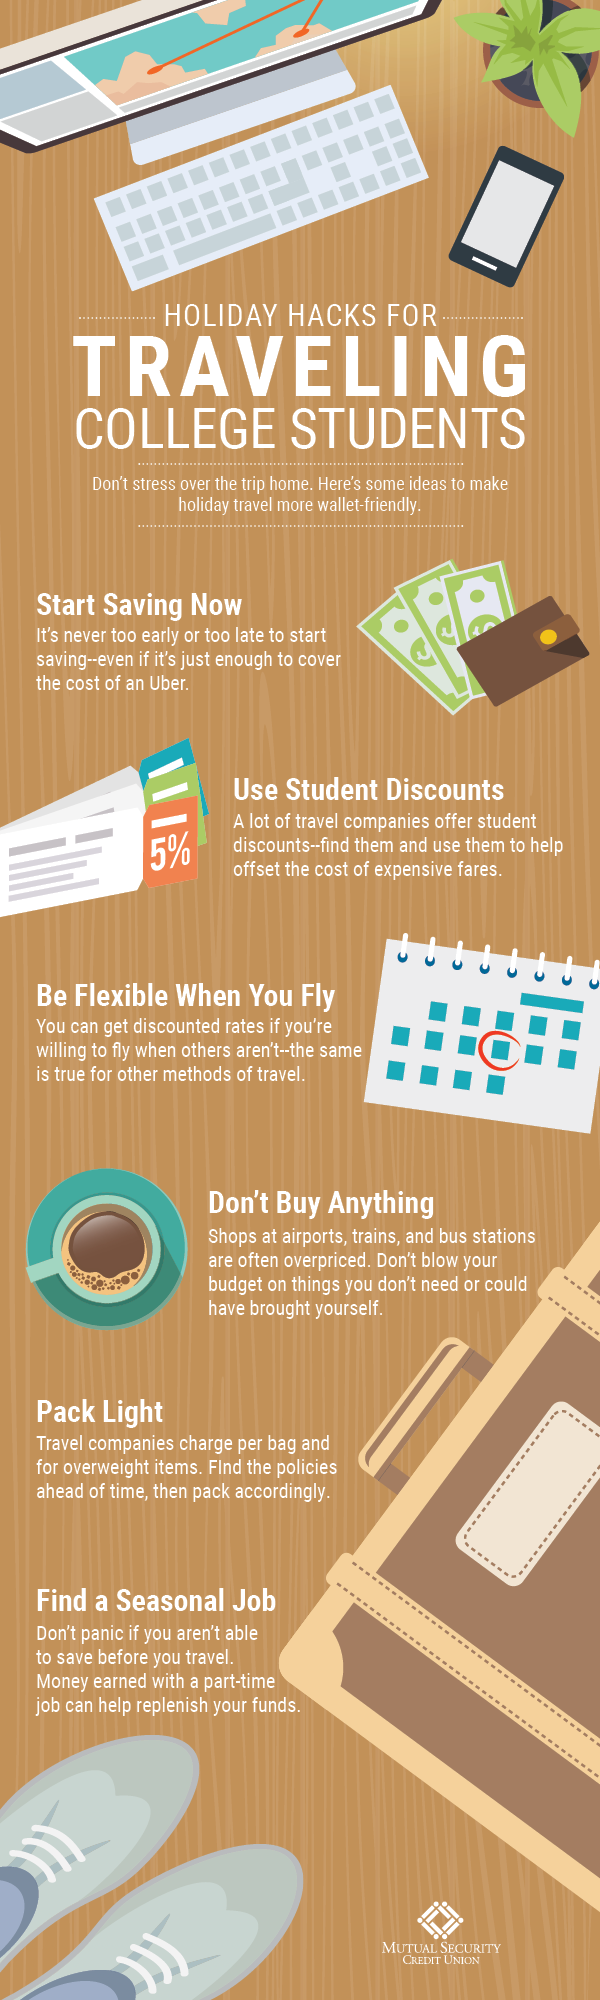 StudentHolidayTravel_Infographic.png